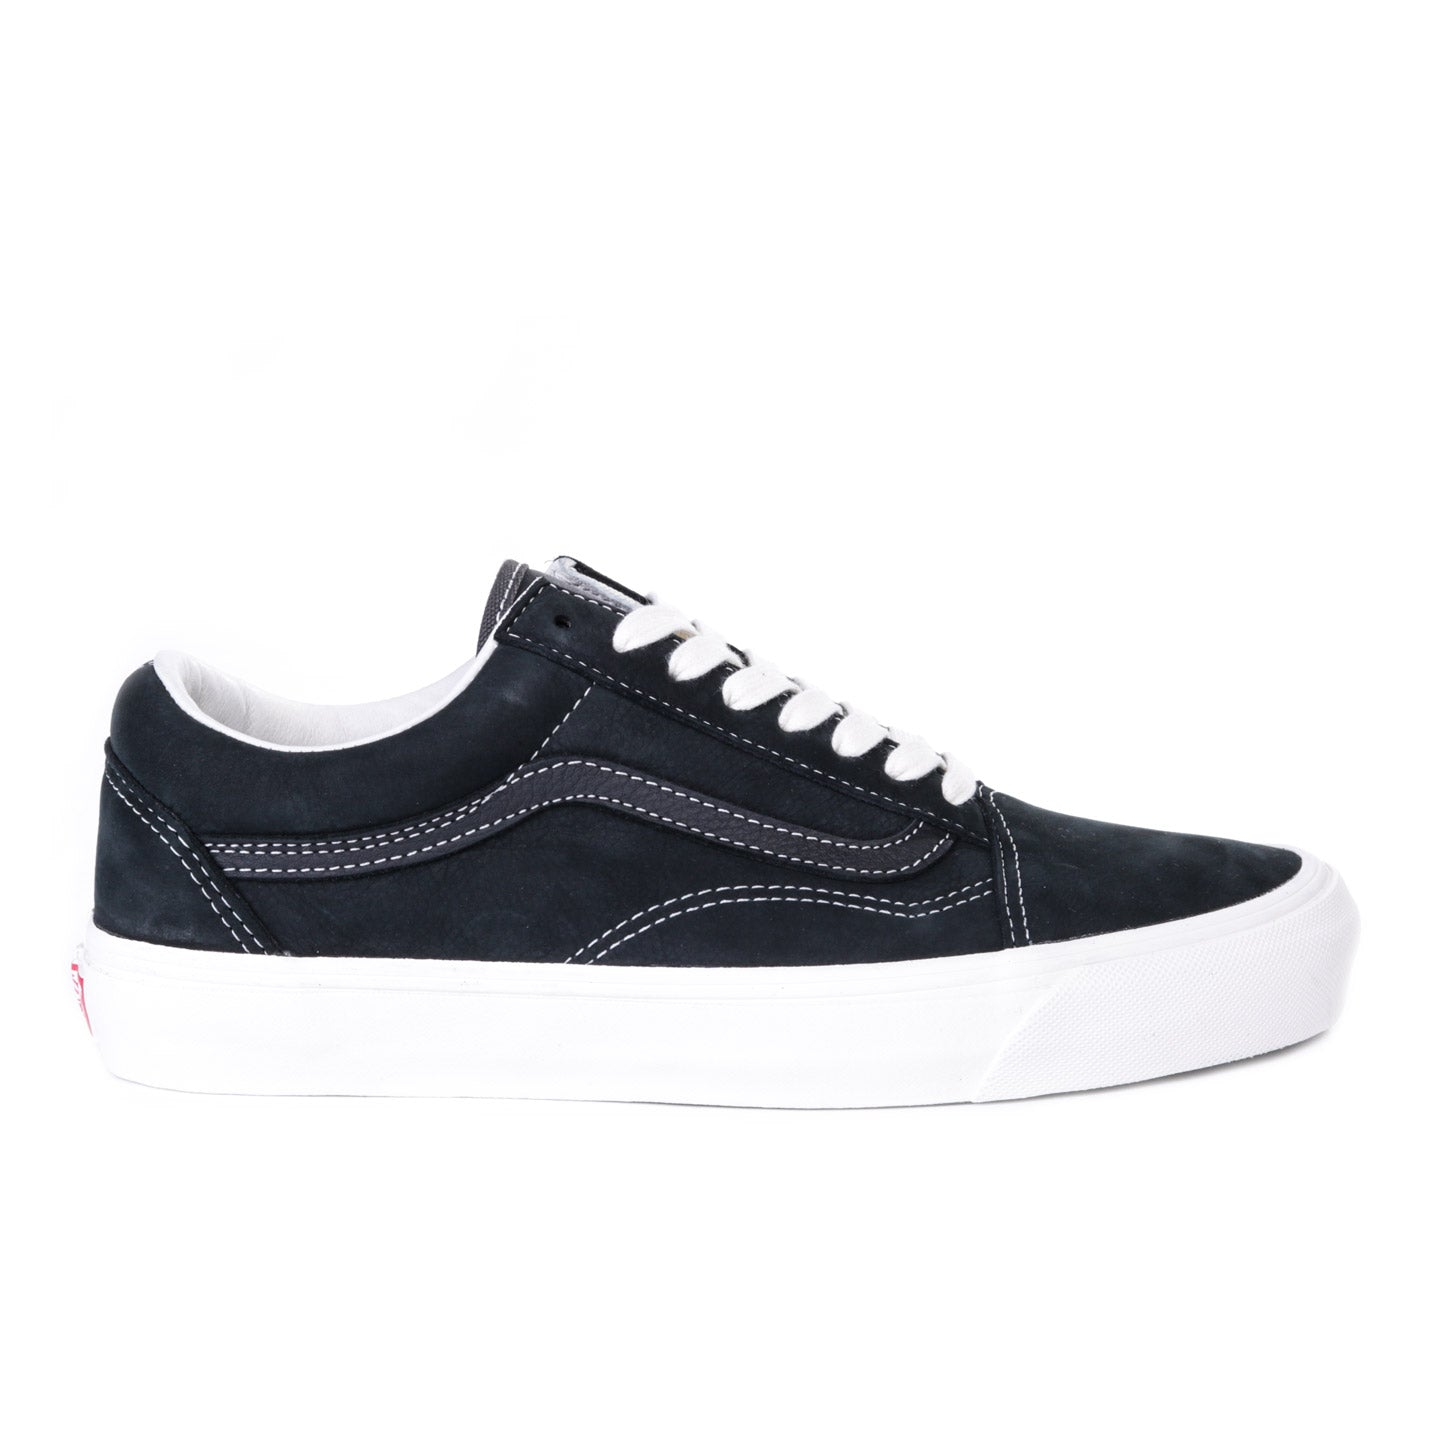 VAULT BY VANS OG OLD SKOOL LX RAVEN / BLACK